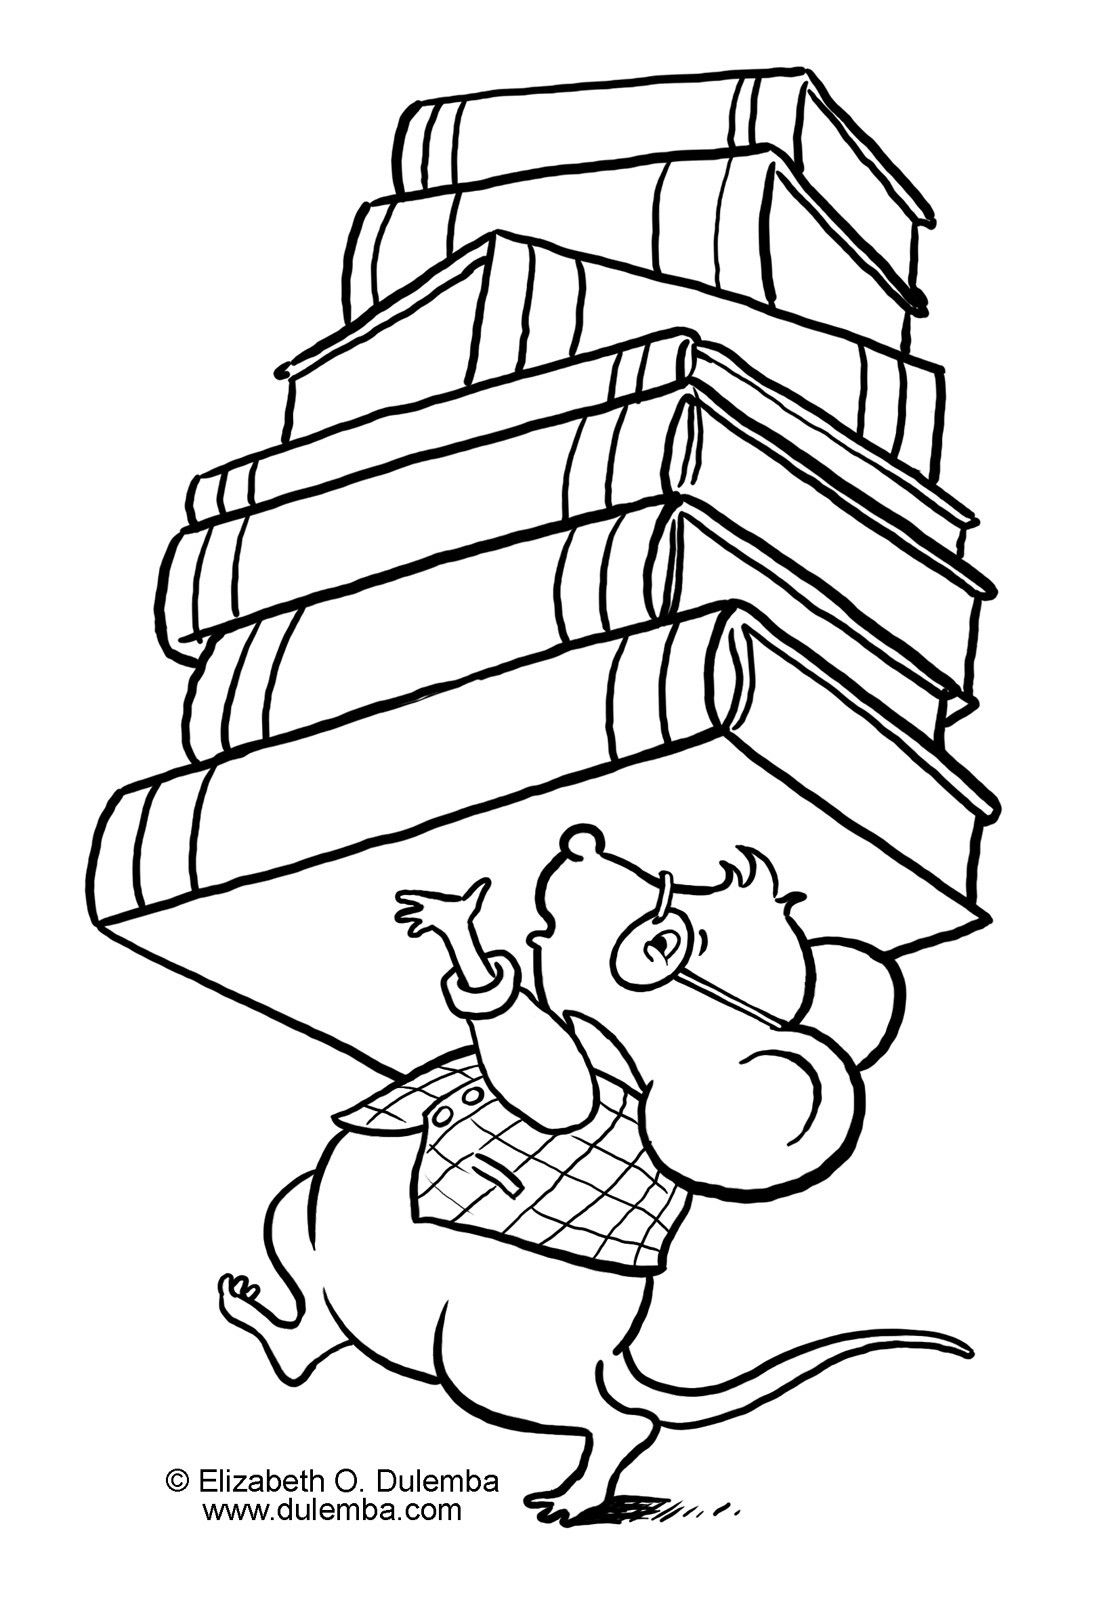 library coloring pages Collection-Library Coloring Pages For Kids 9-c